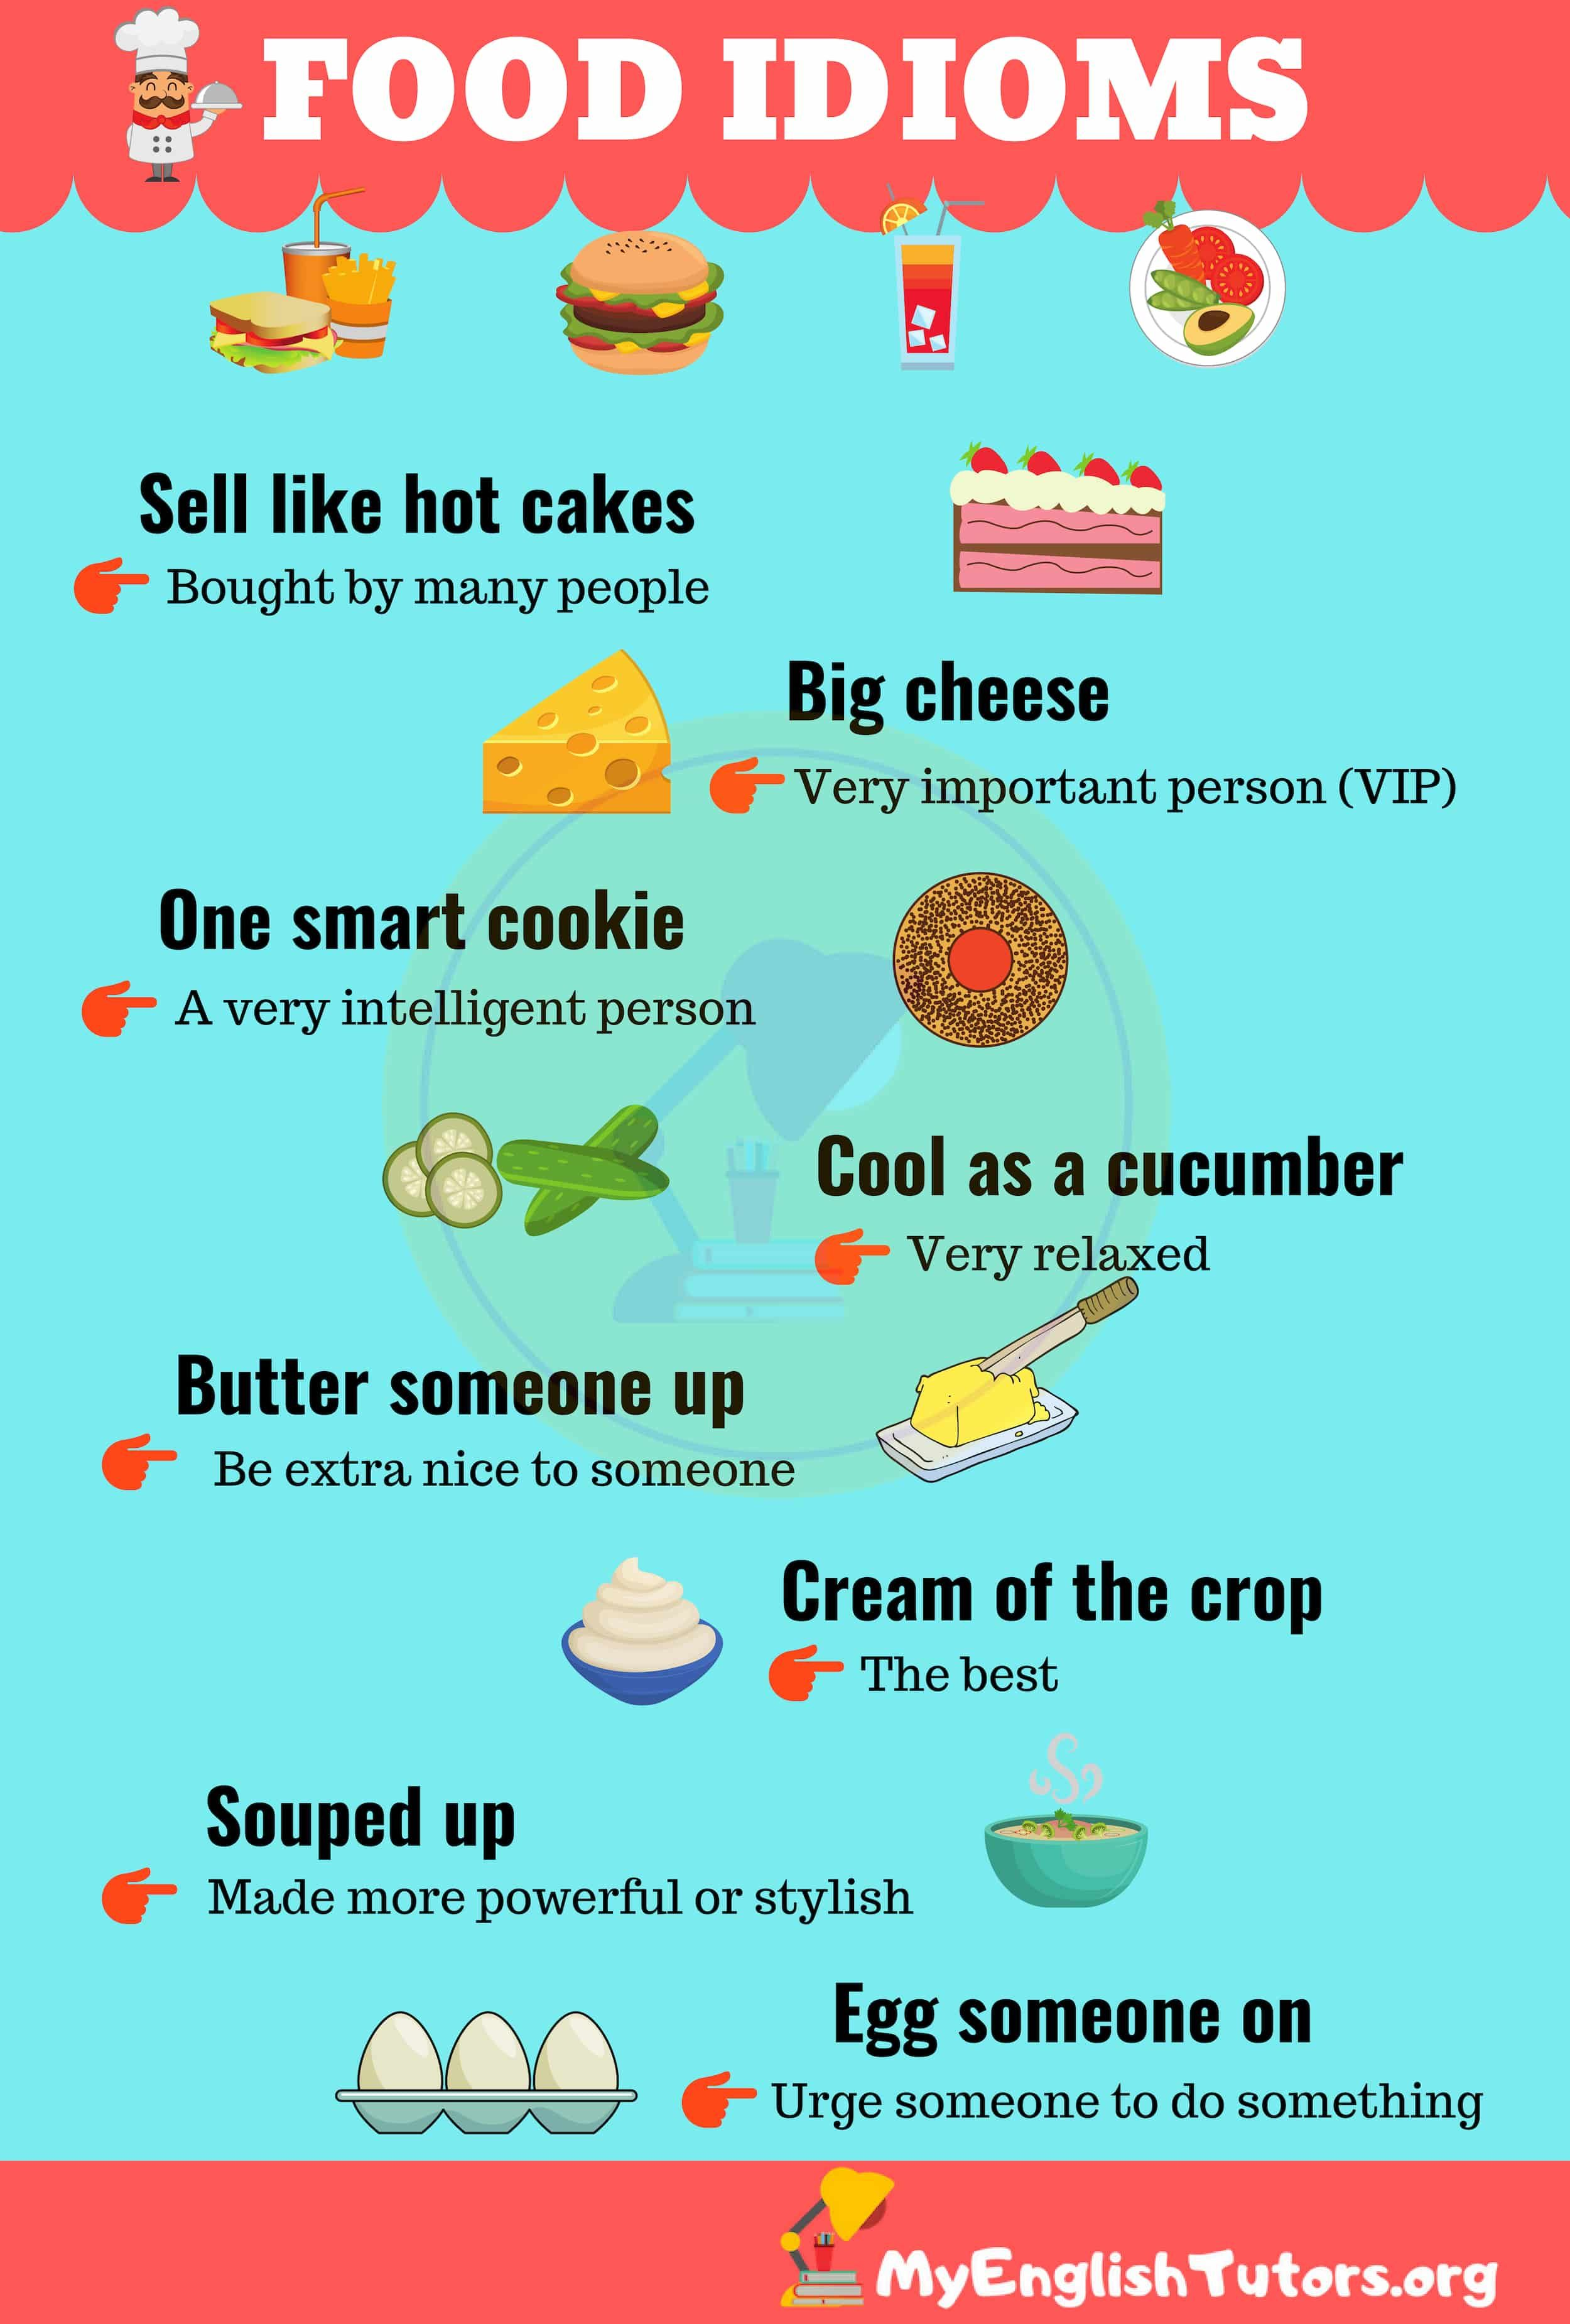 10 Food Idioms And Their Meaning You Need To Know